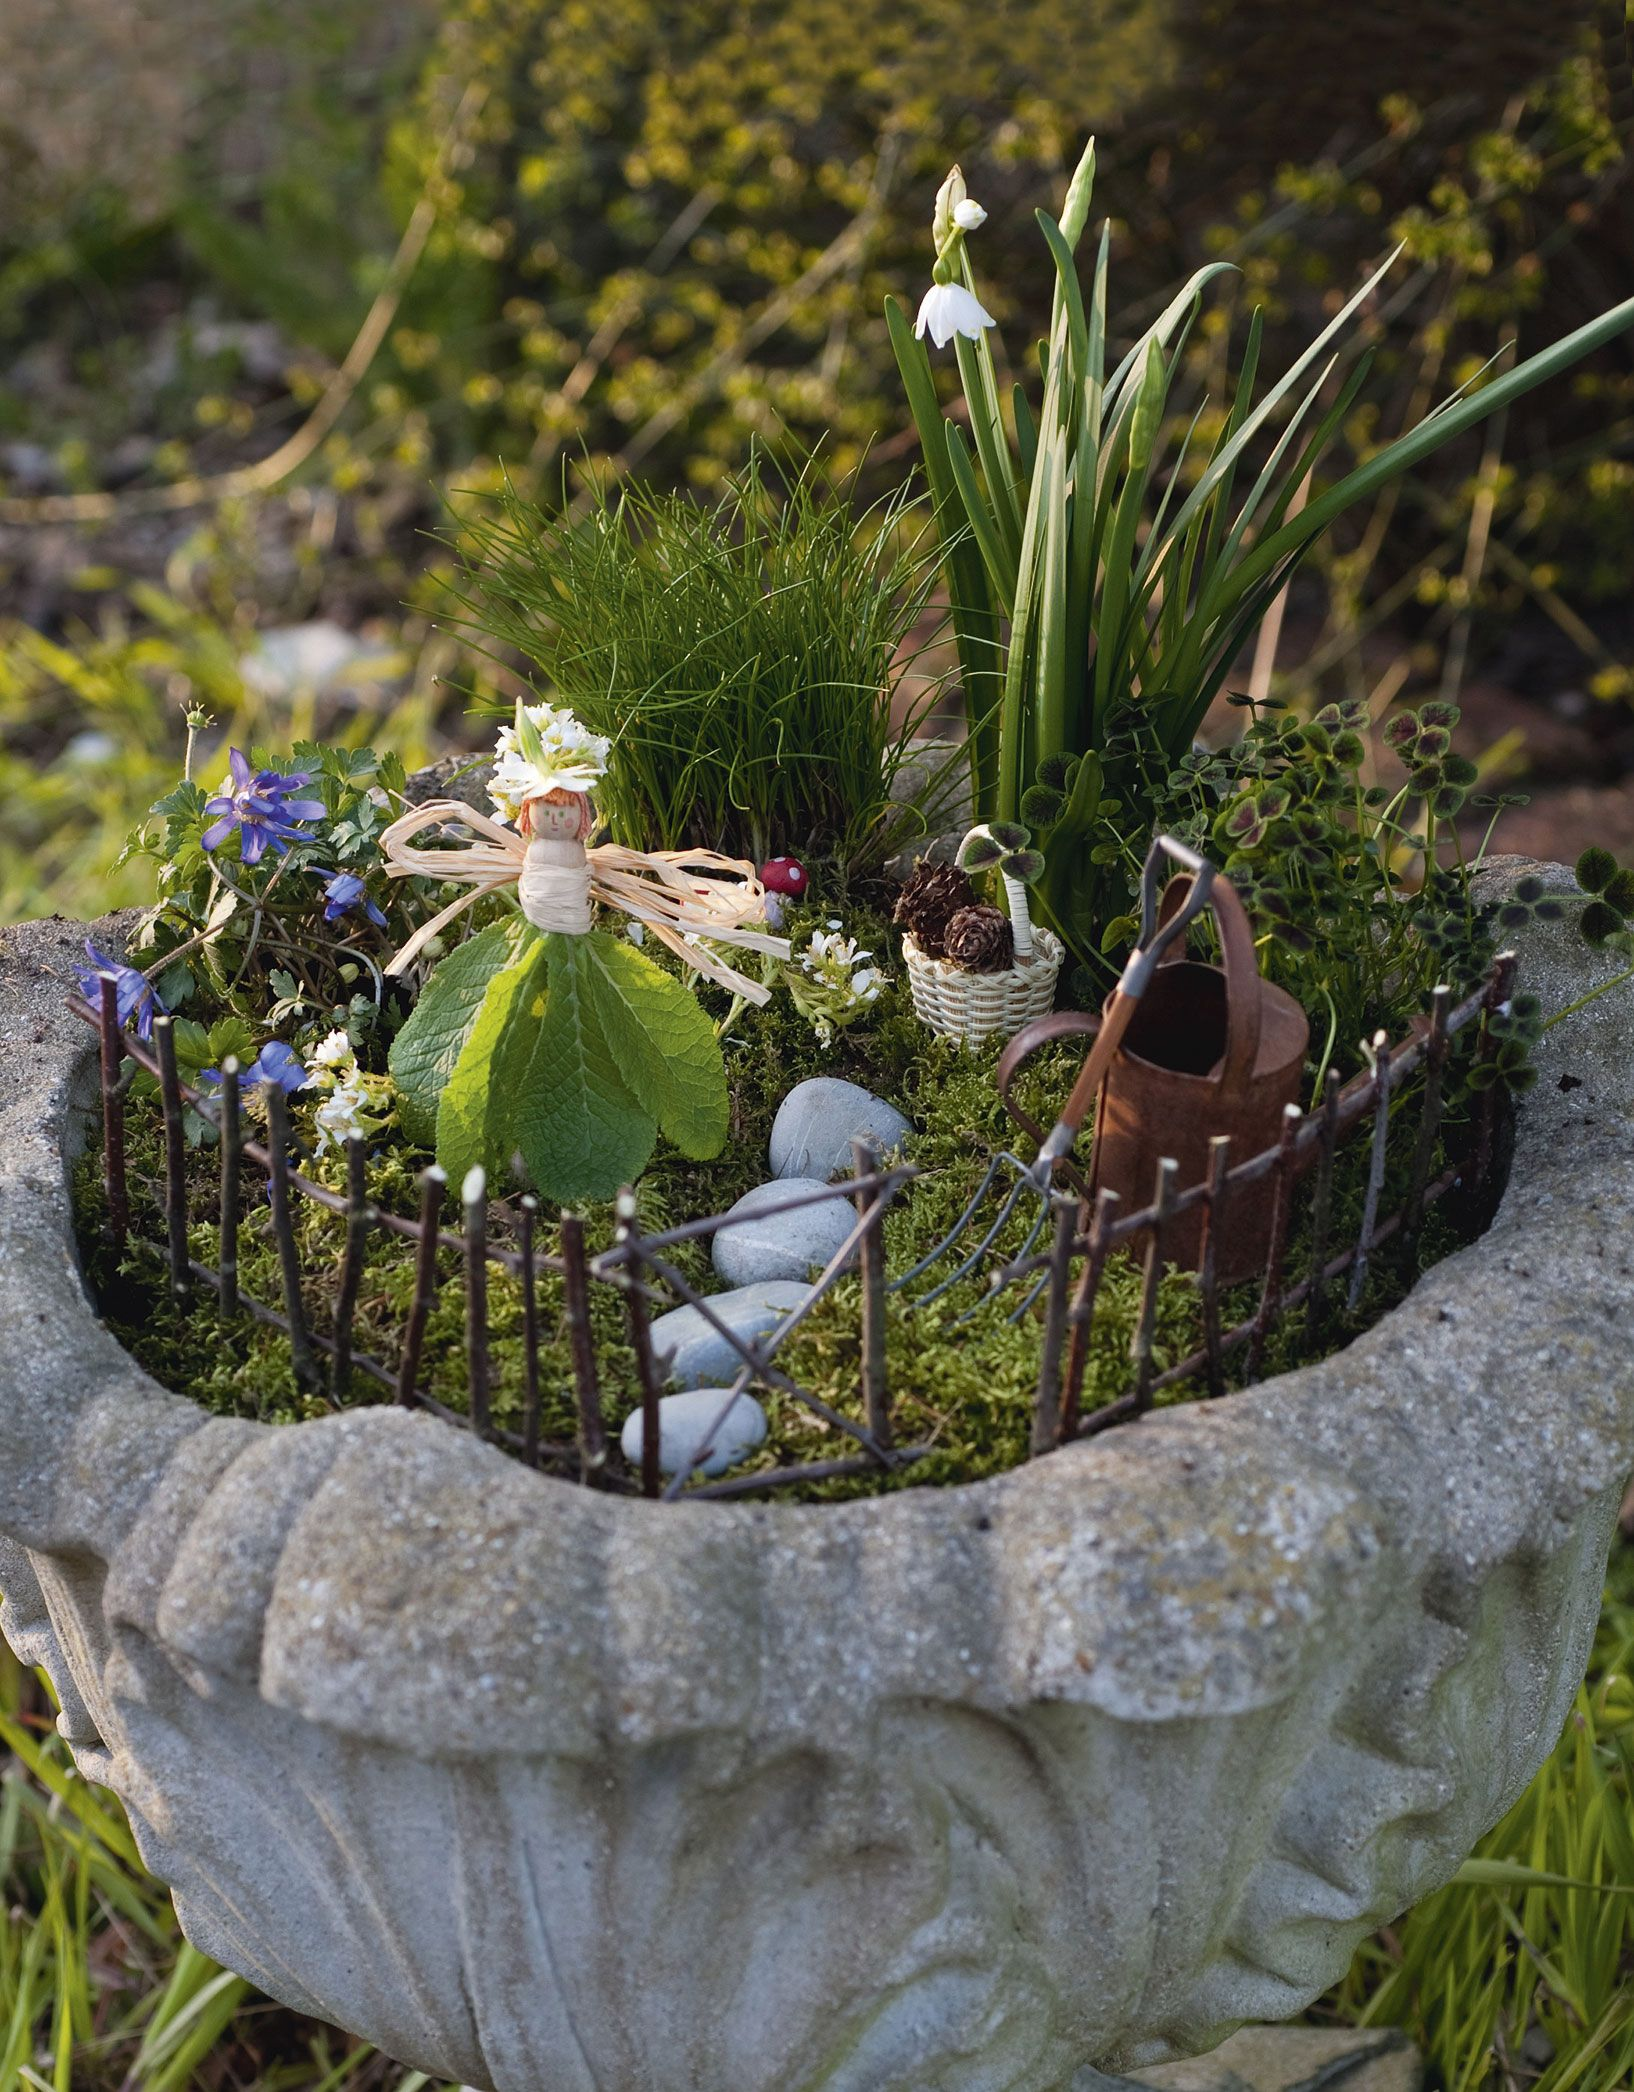 Garden Ideas For Kids To Make garden ideas from recycled materials | recycled crafts: craft